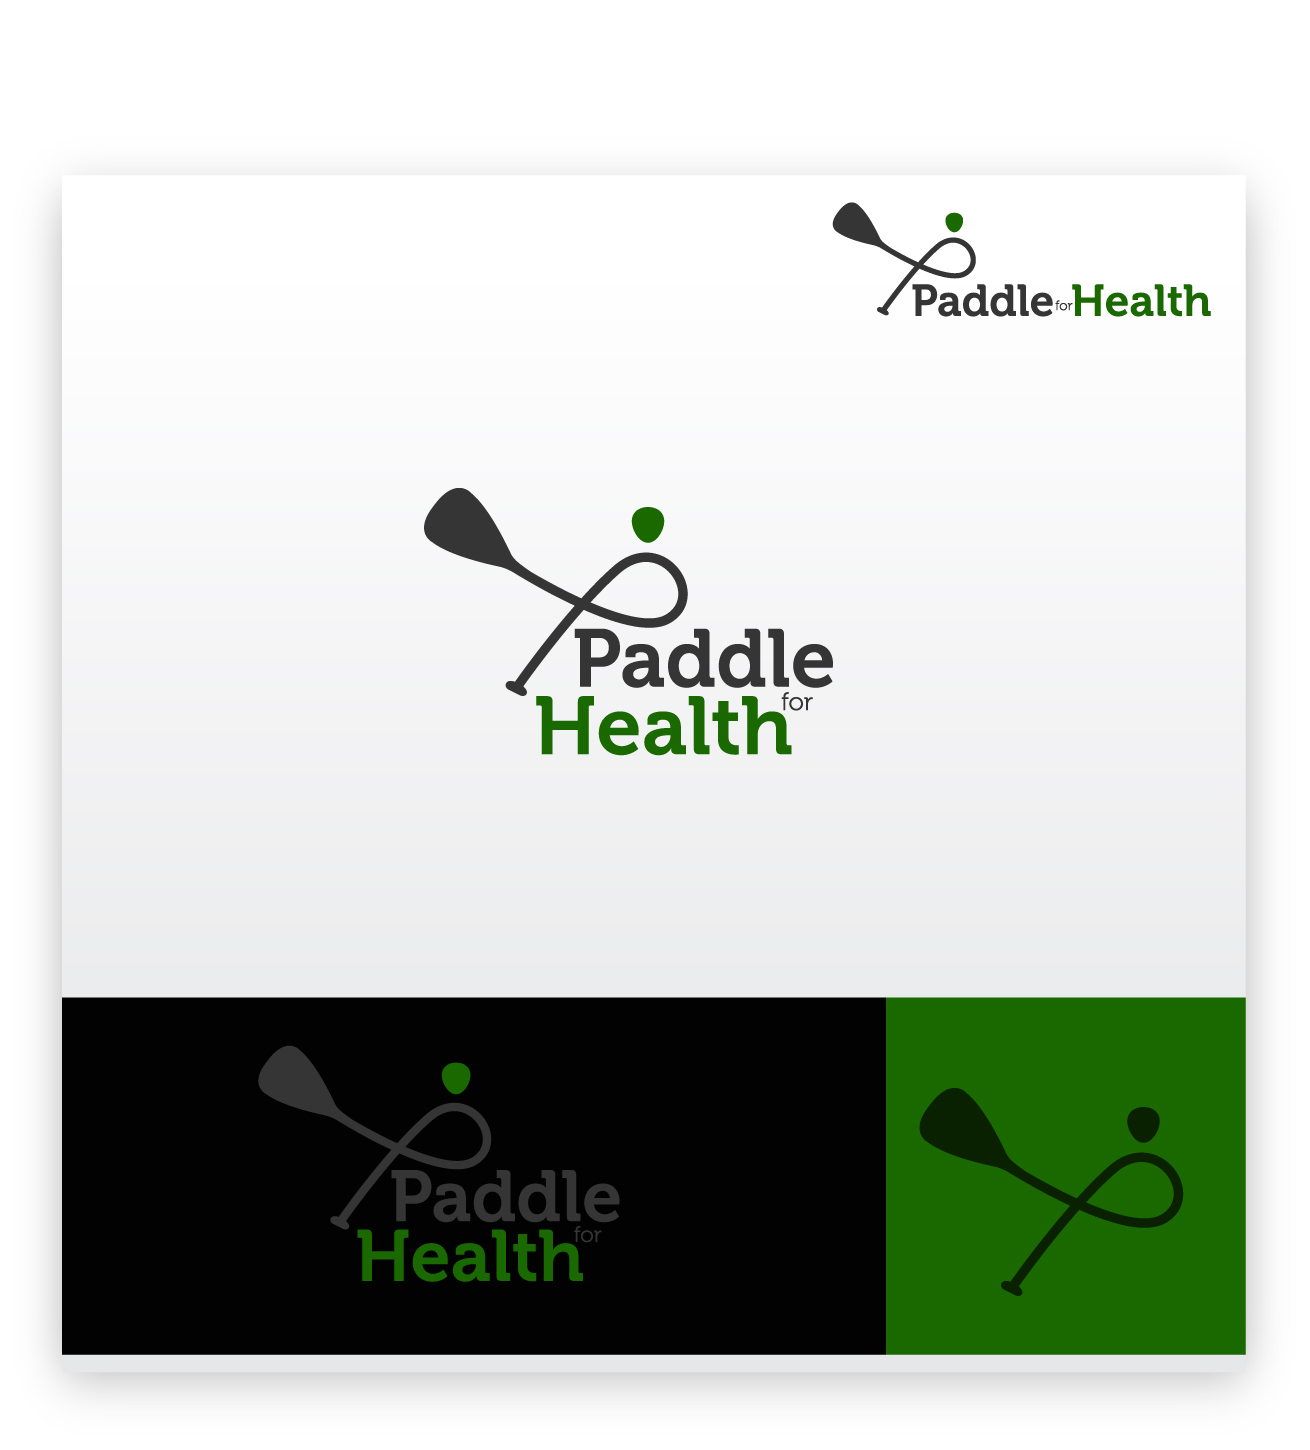 Logo Design by zoiDesign - Entry No. 25 in the Logo Design Contest Creative Logo Design for Paddle for Health.